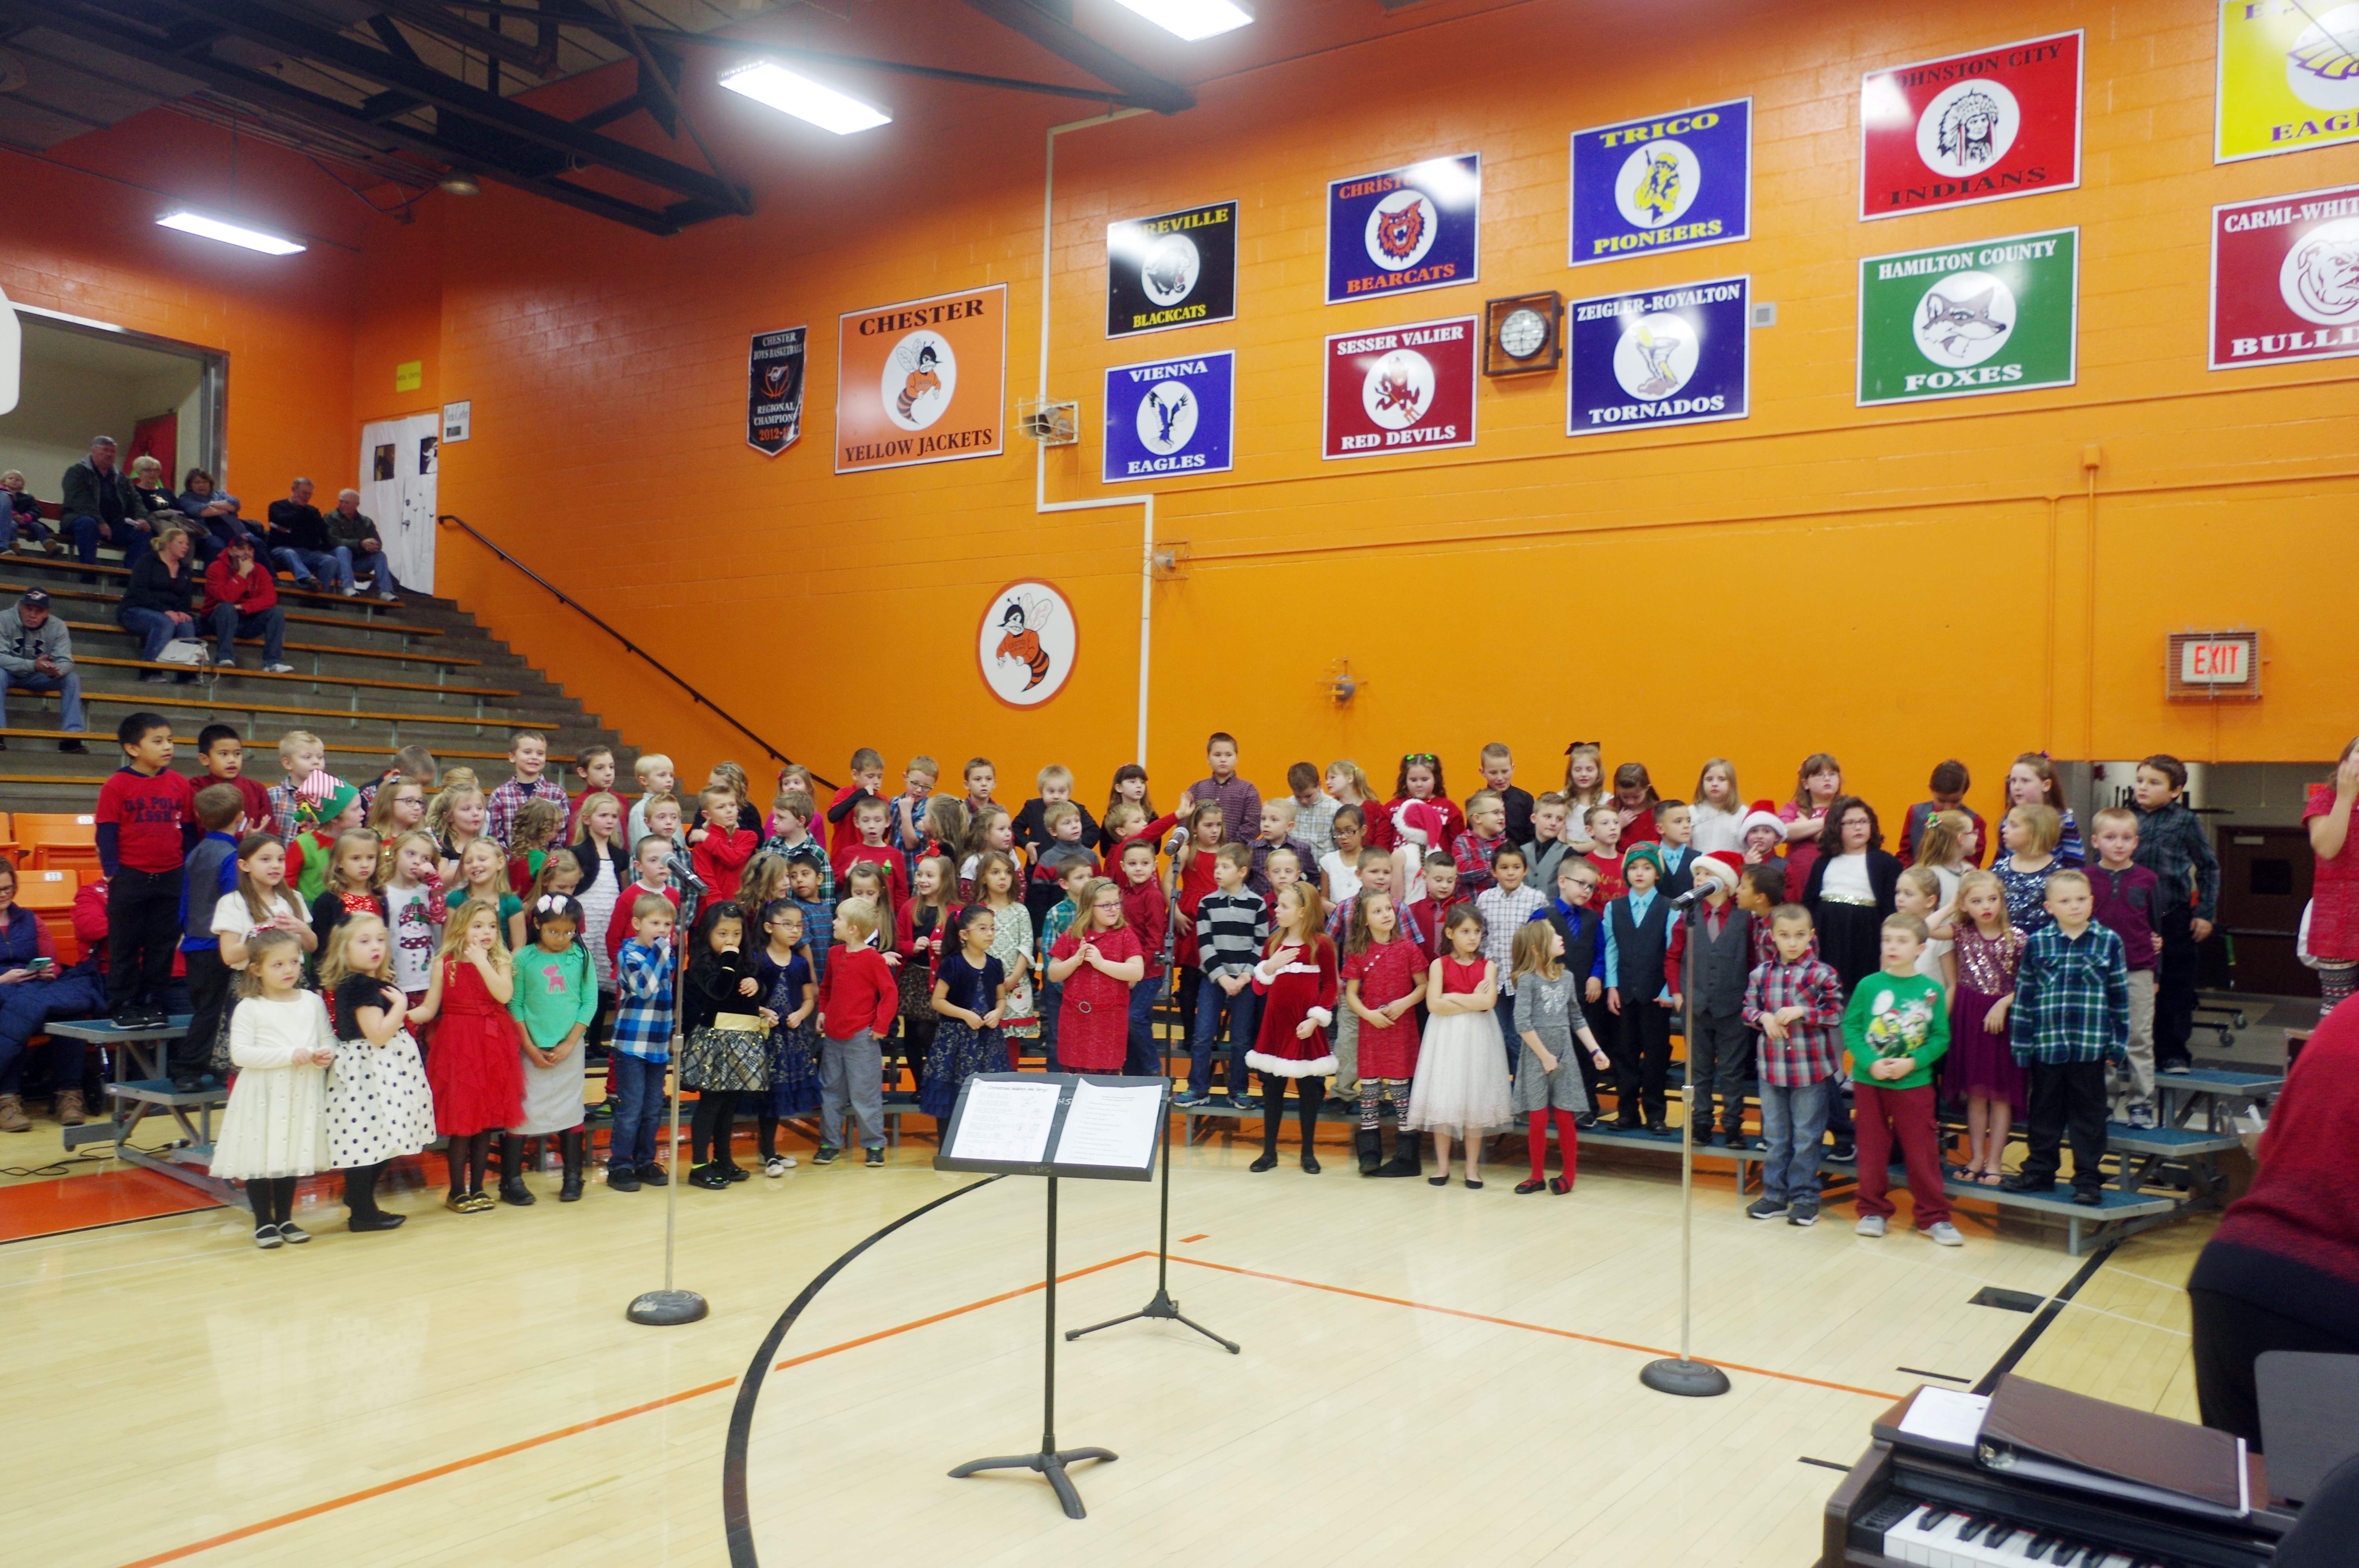 First and second graders prepare to perform at the Chester Grade School 1st through 4th Grade Christmas Program on December 14 at Chester High School's Colbert Gymnasium.